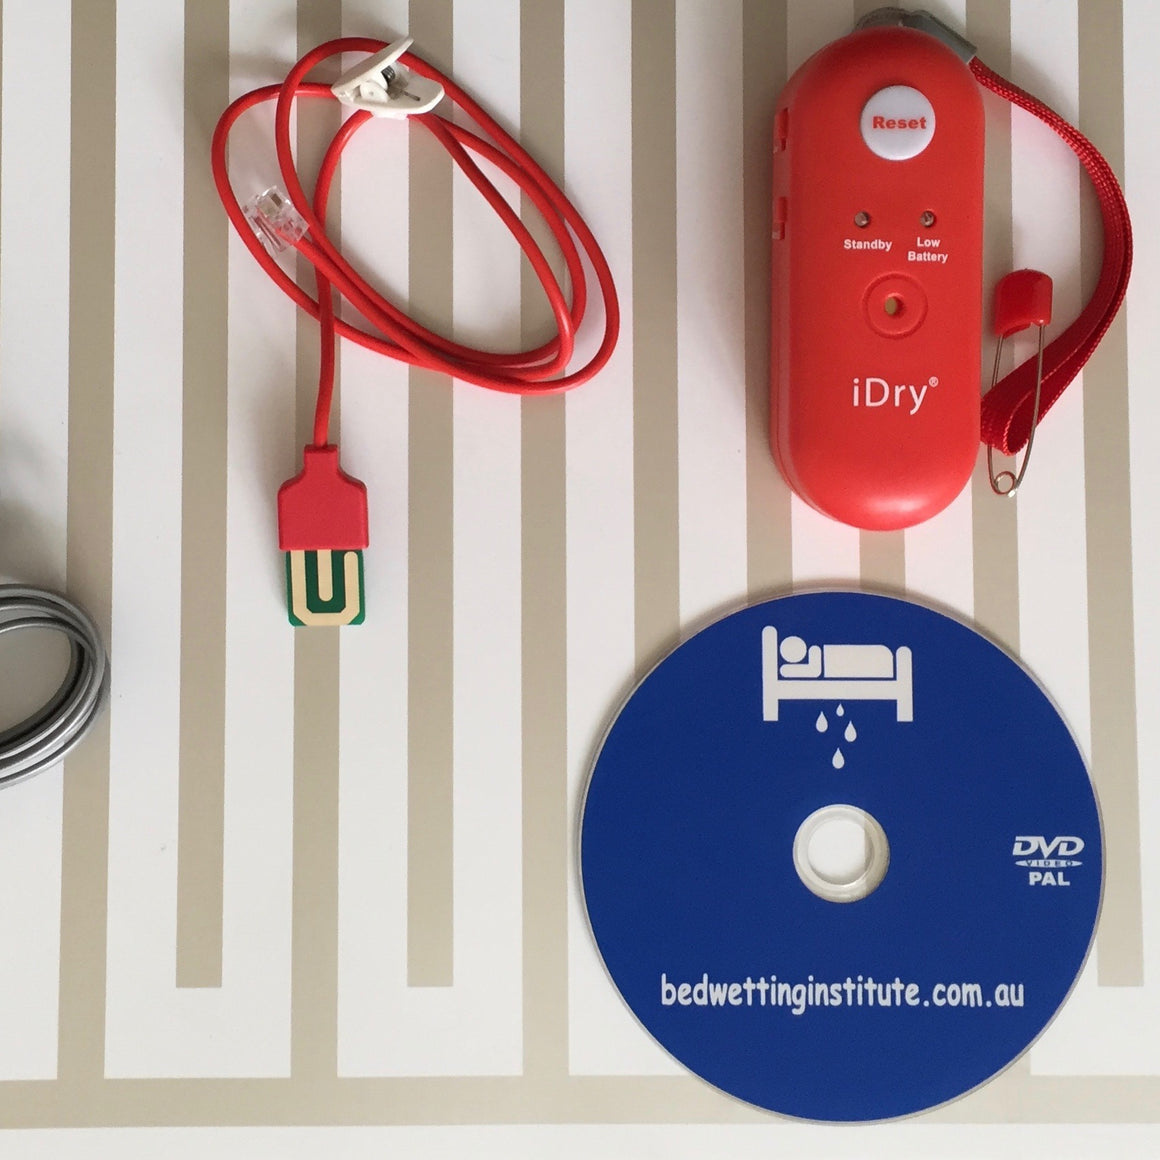 iDry Bed Wetting Alarm - loudest + one mat pad + underpants sensor + DVD bedwetting